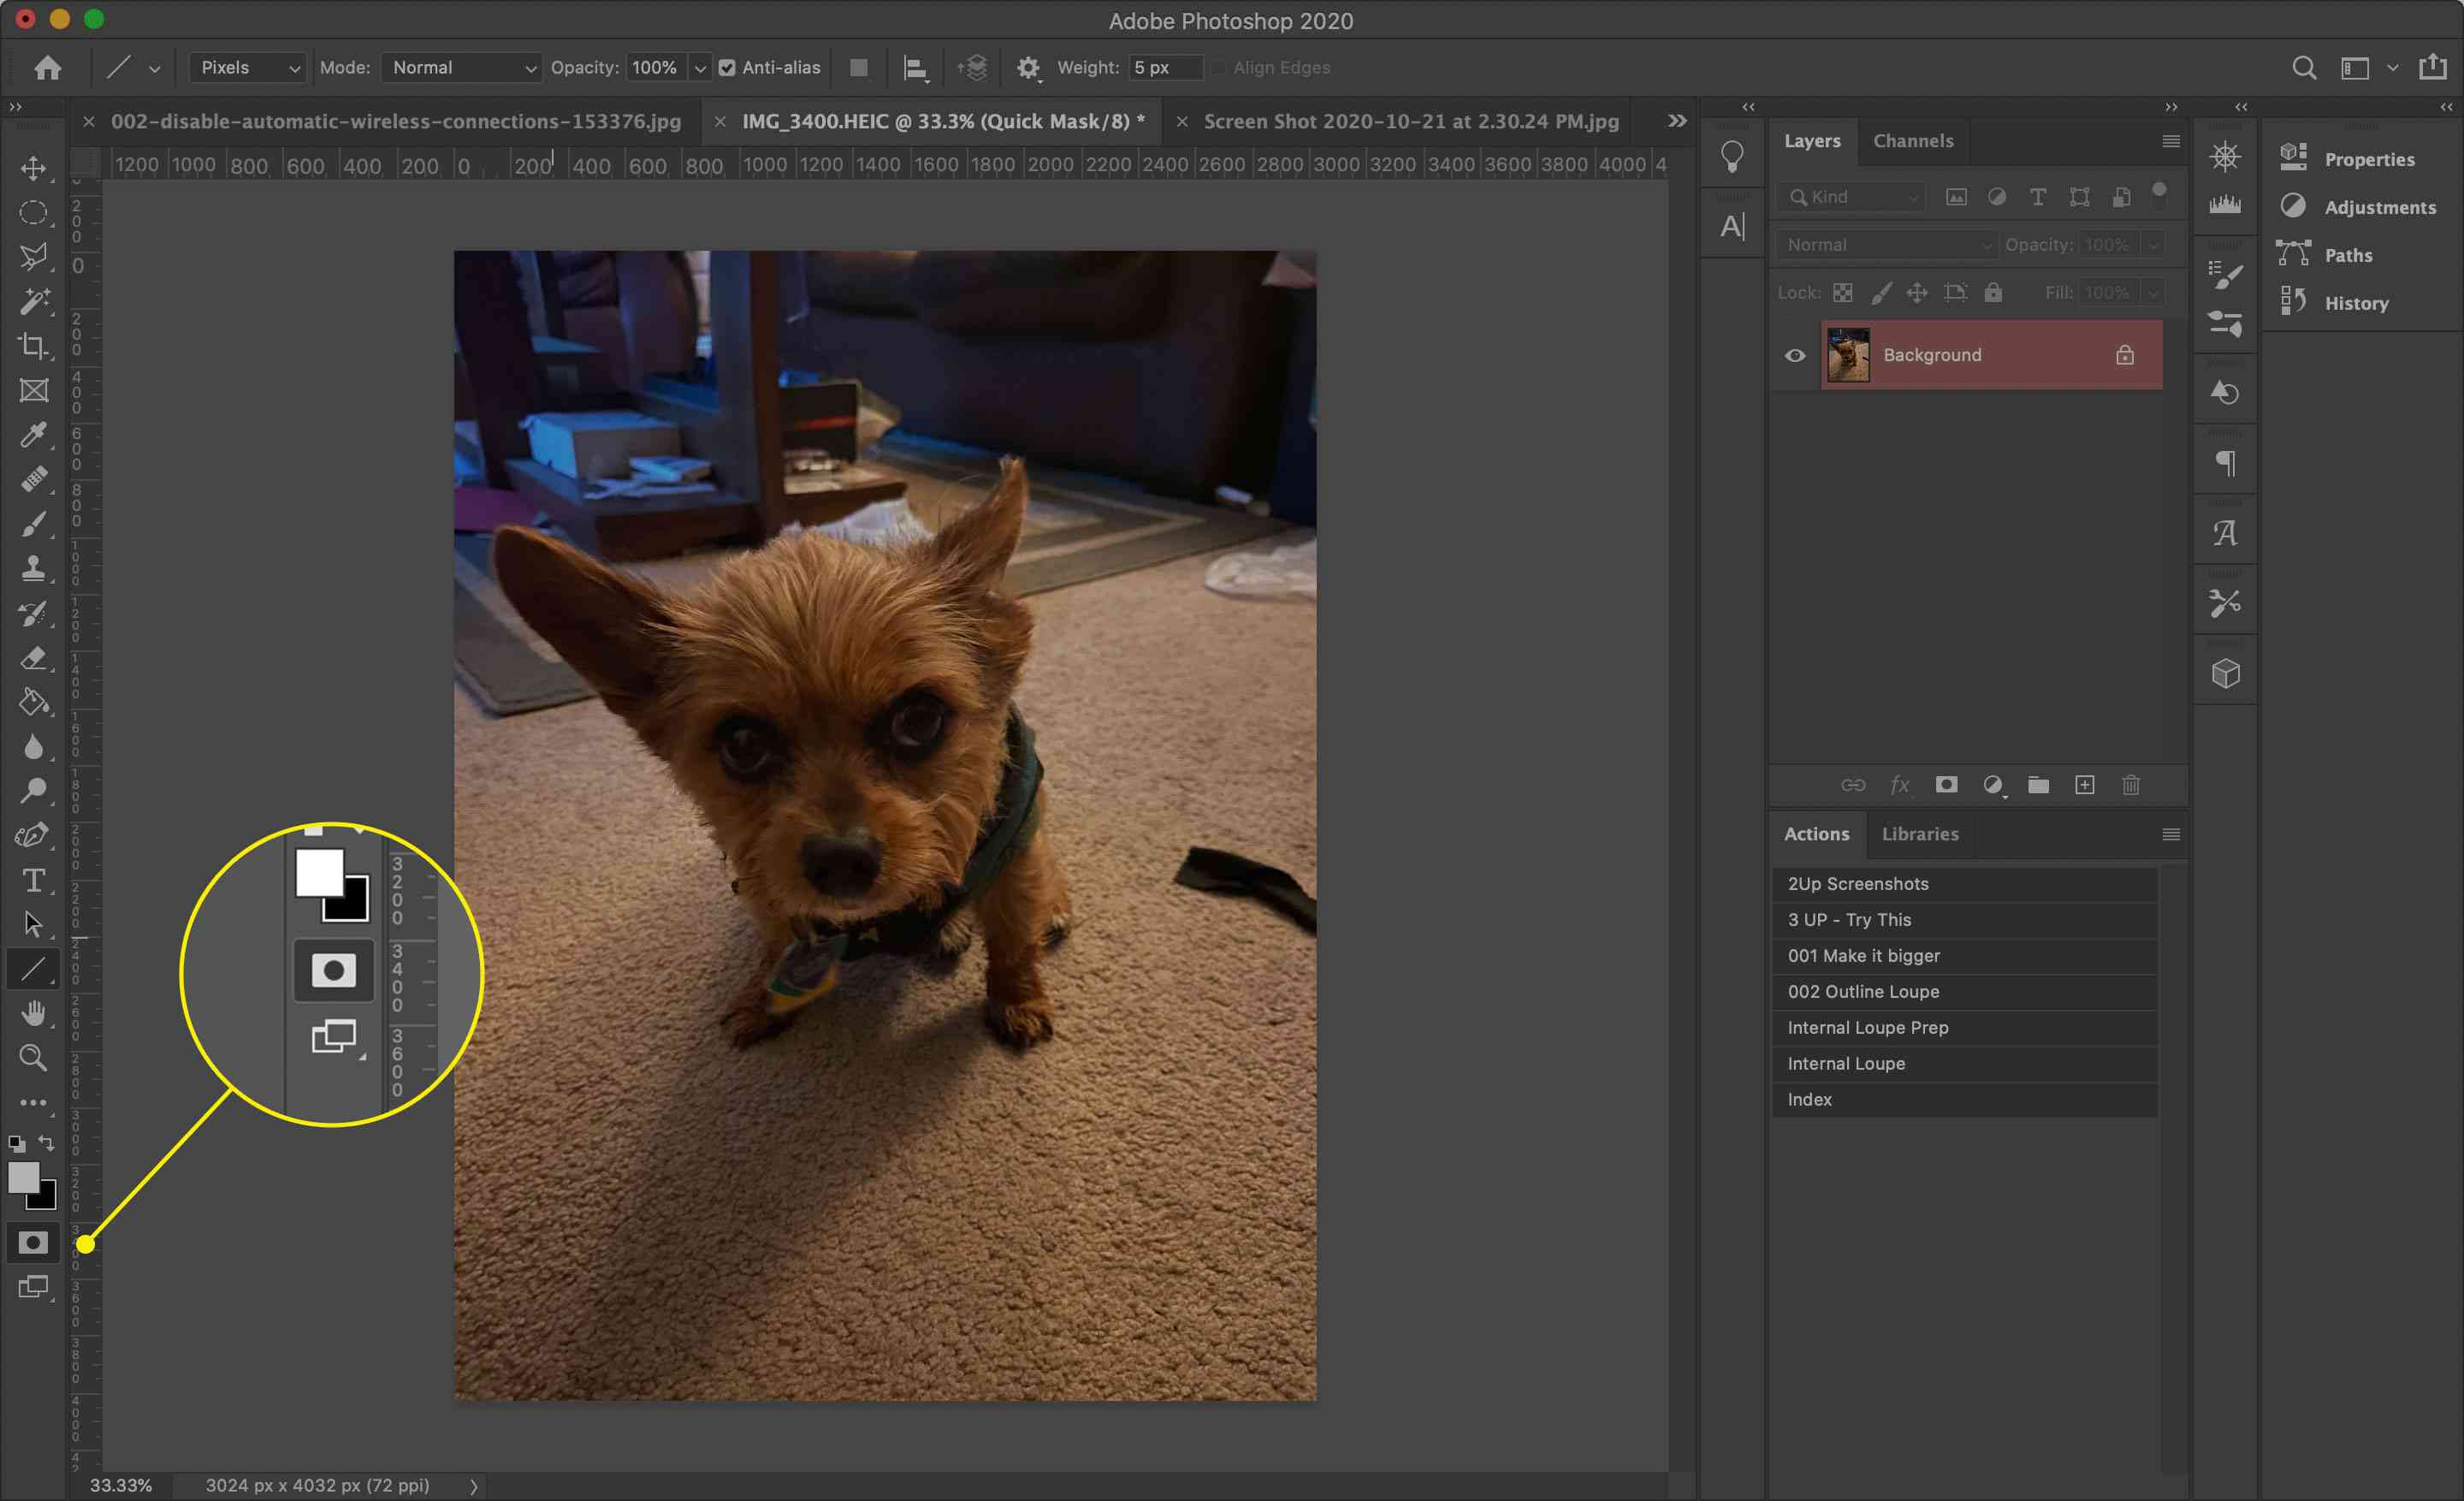 The Quick Mask tool in Photoshop